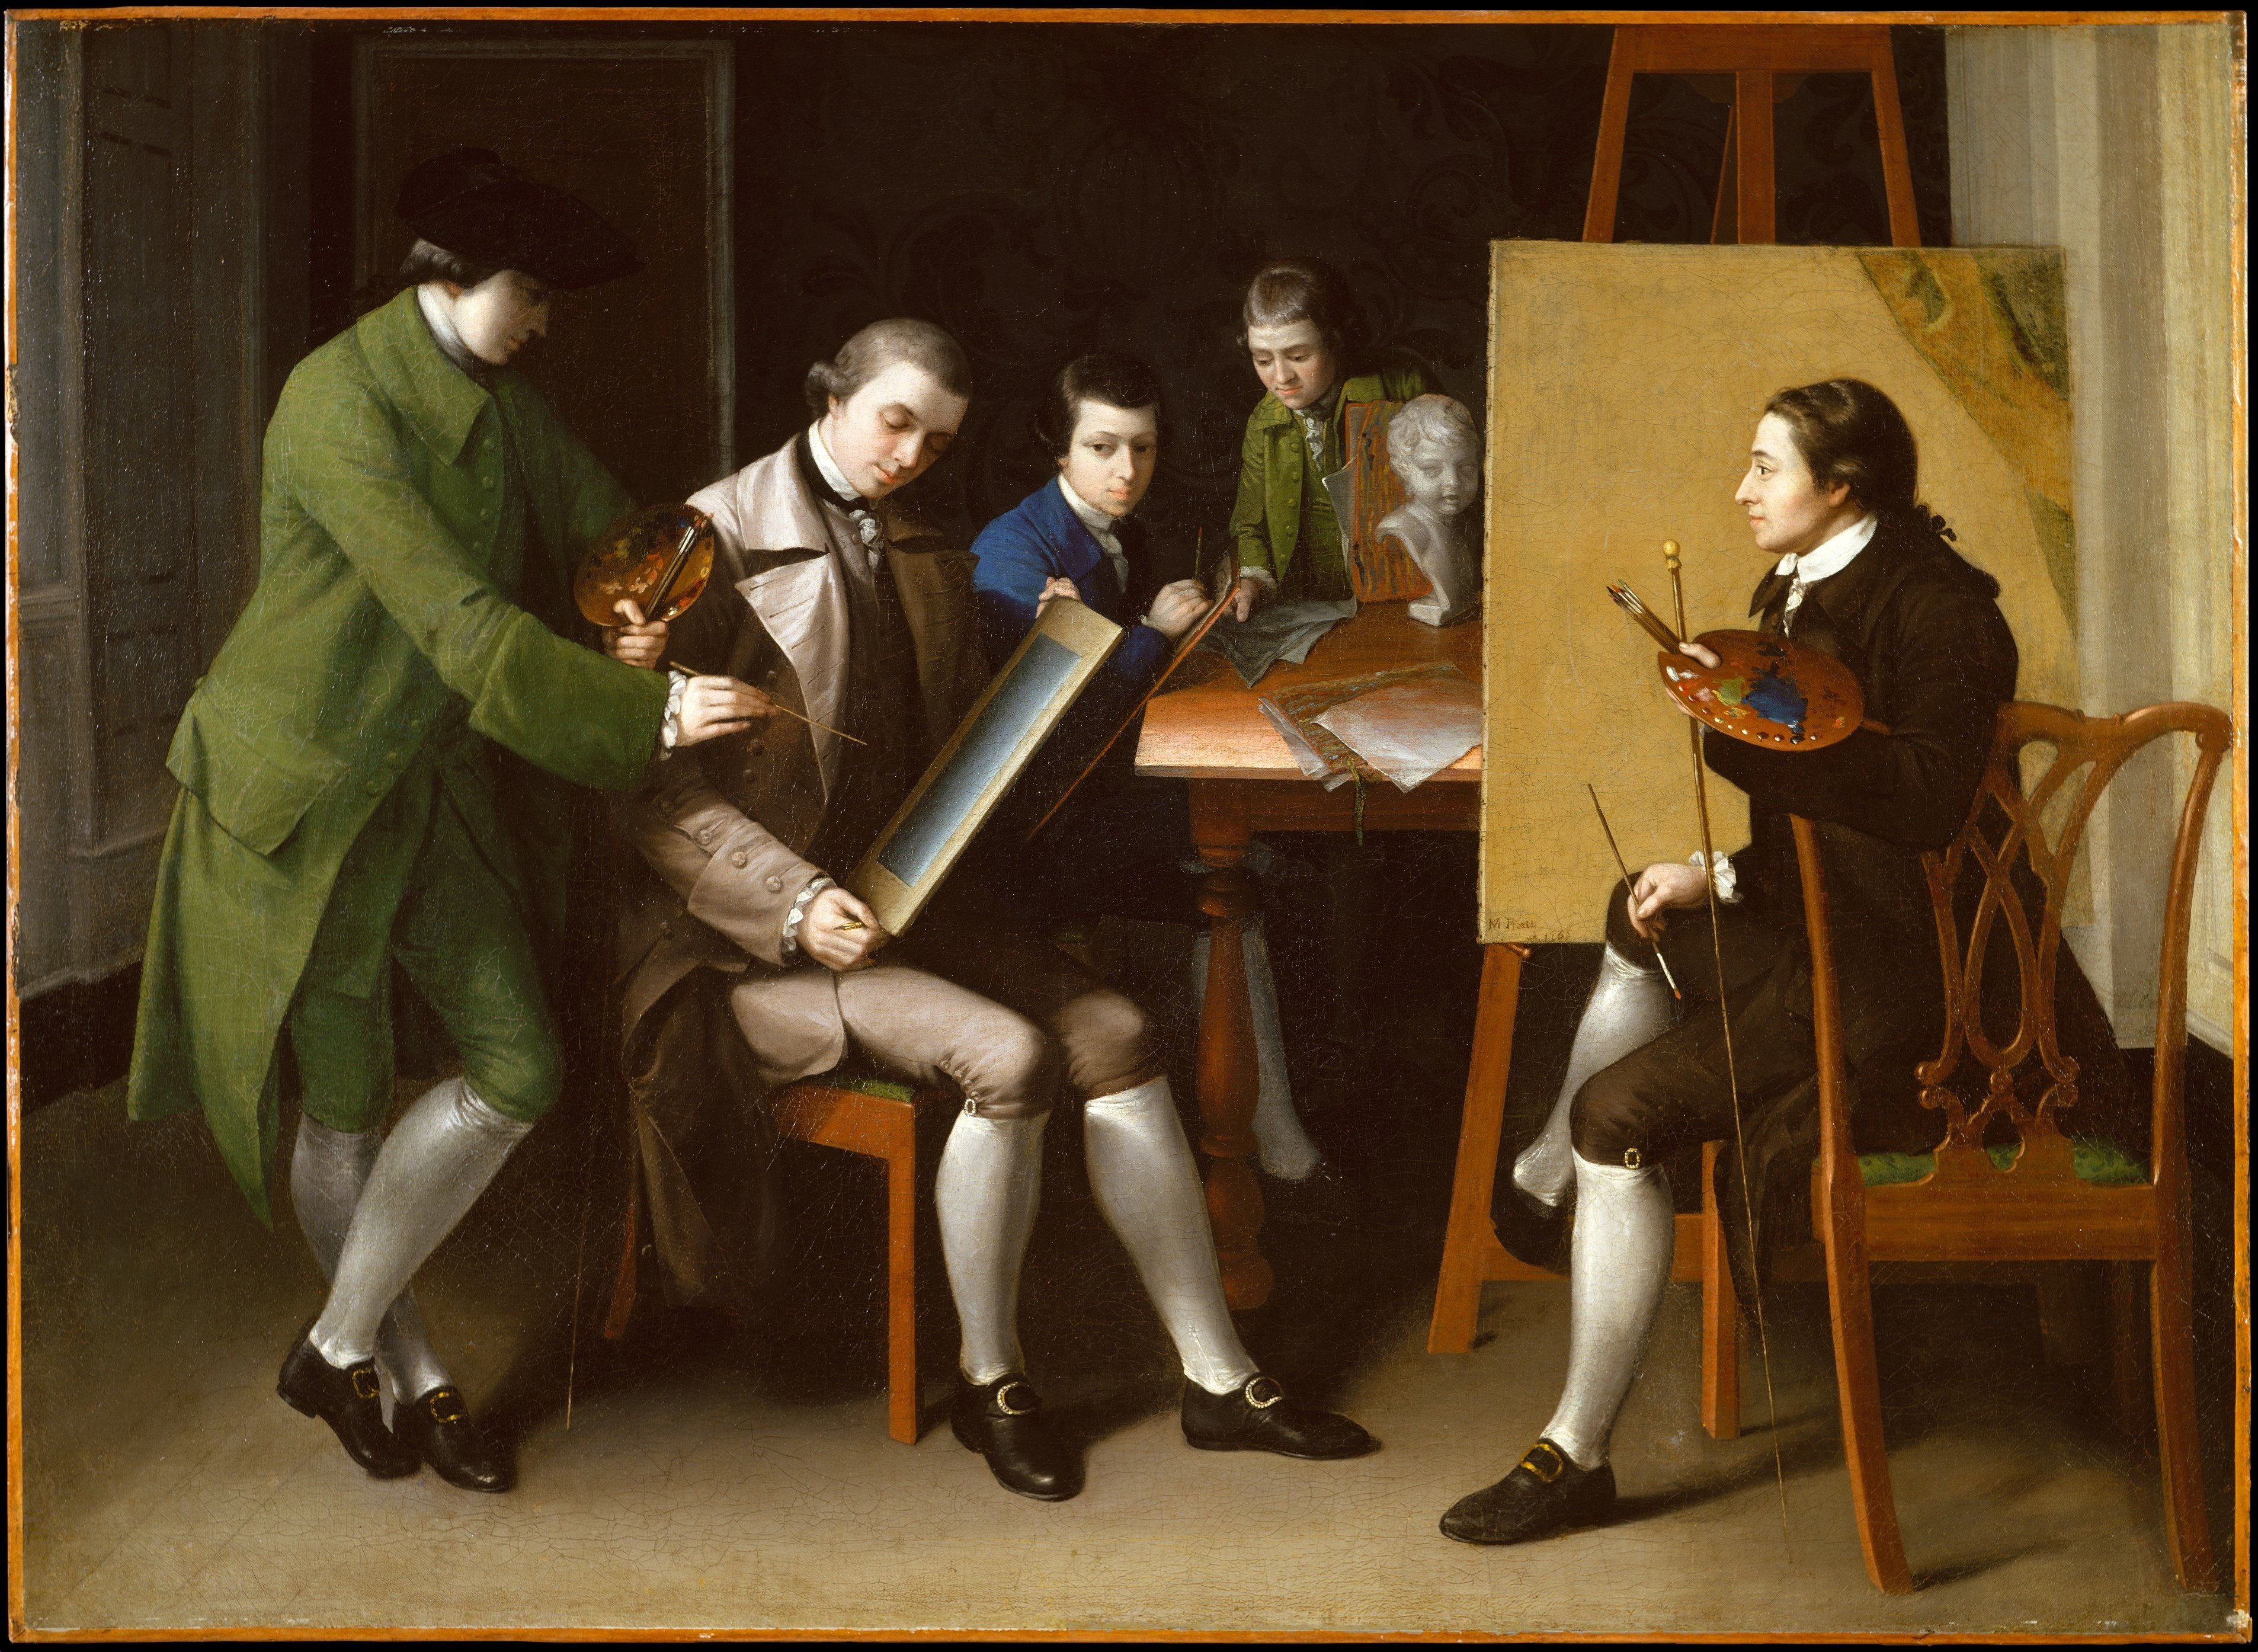 An analysis of the american school a painting by matthew pratt